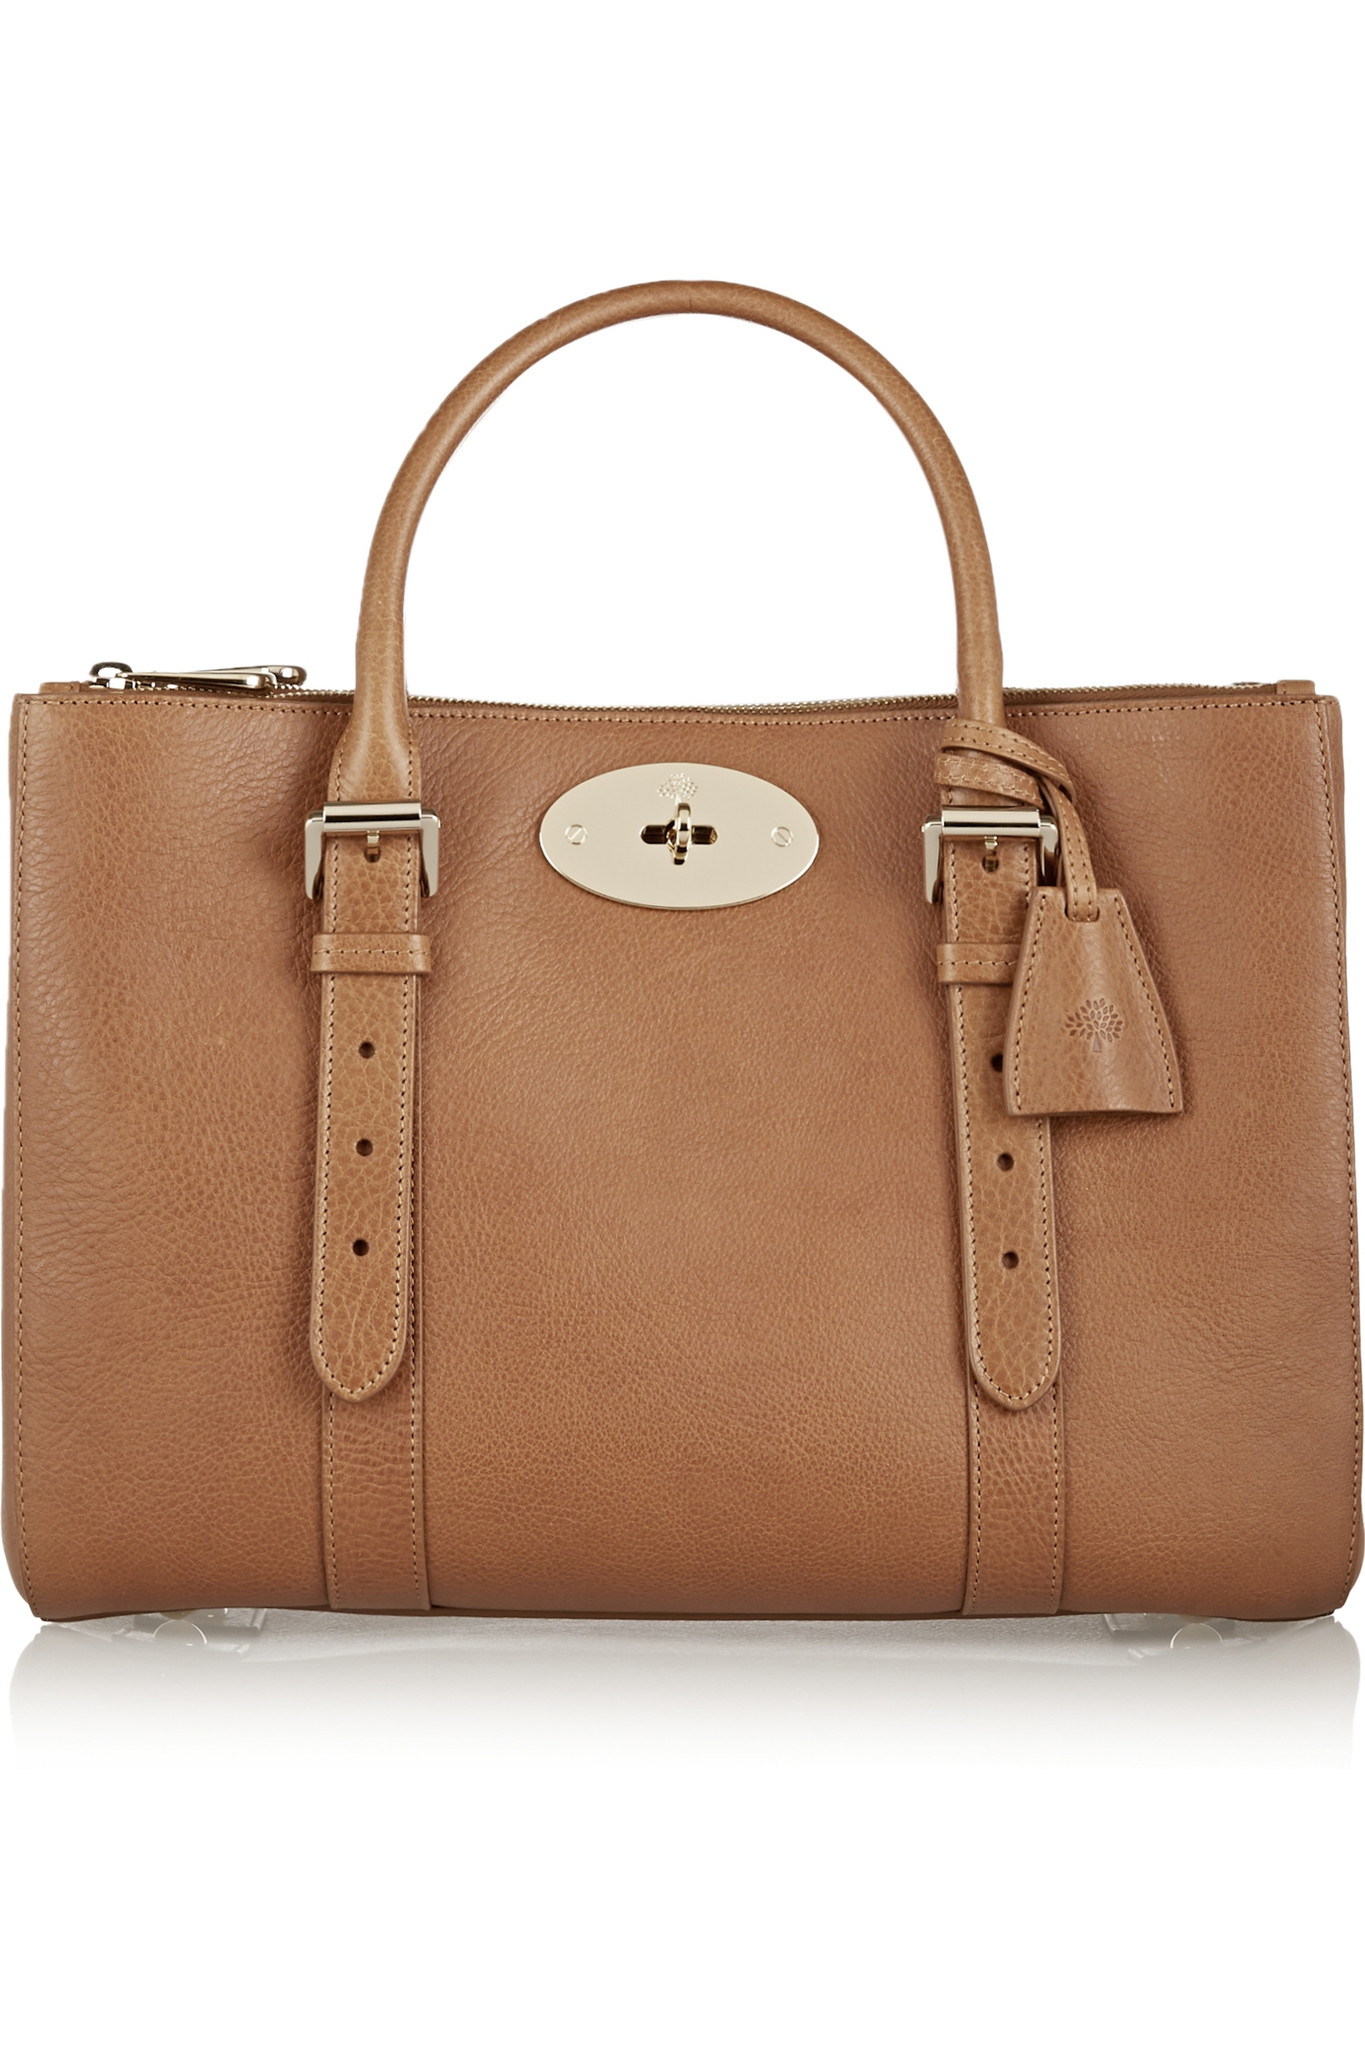 Mulberry small 39 bayswater 39 tote in brown save 50 lyst for The bayswater